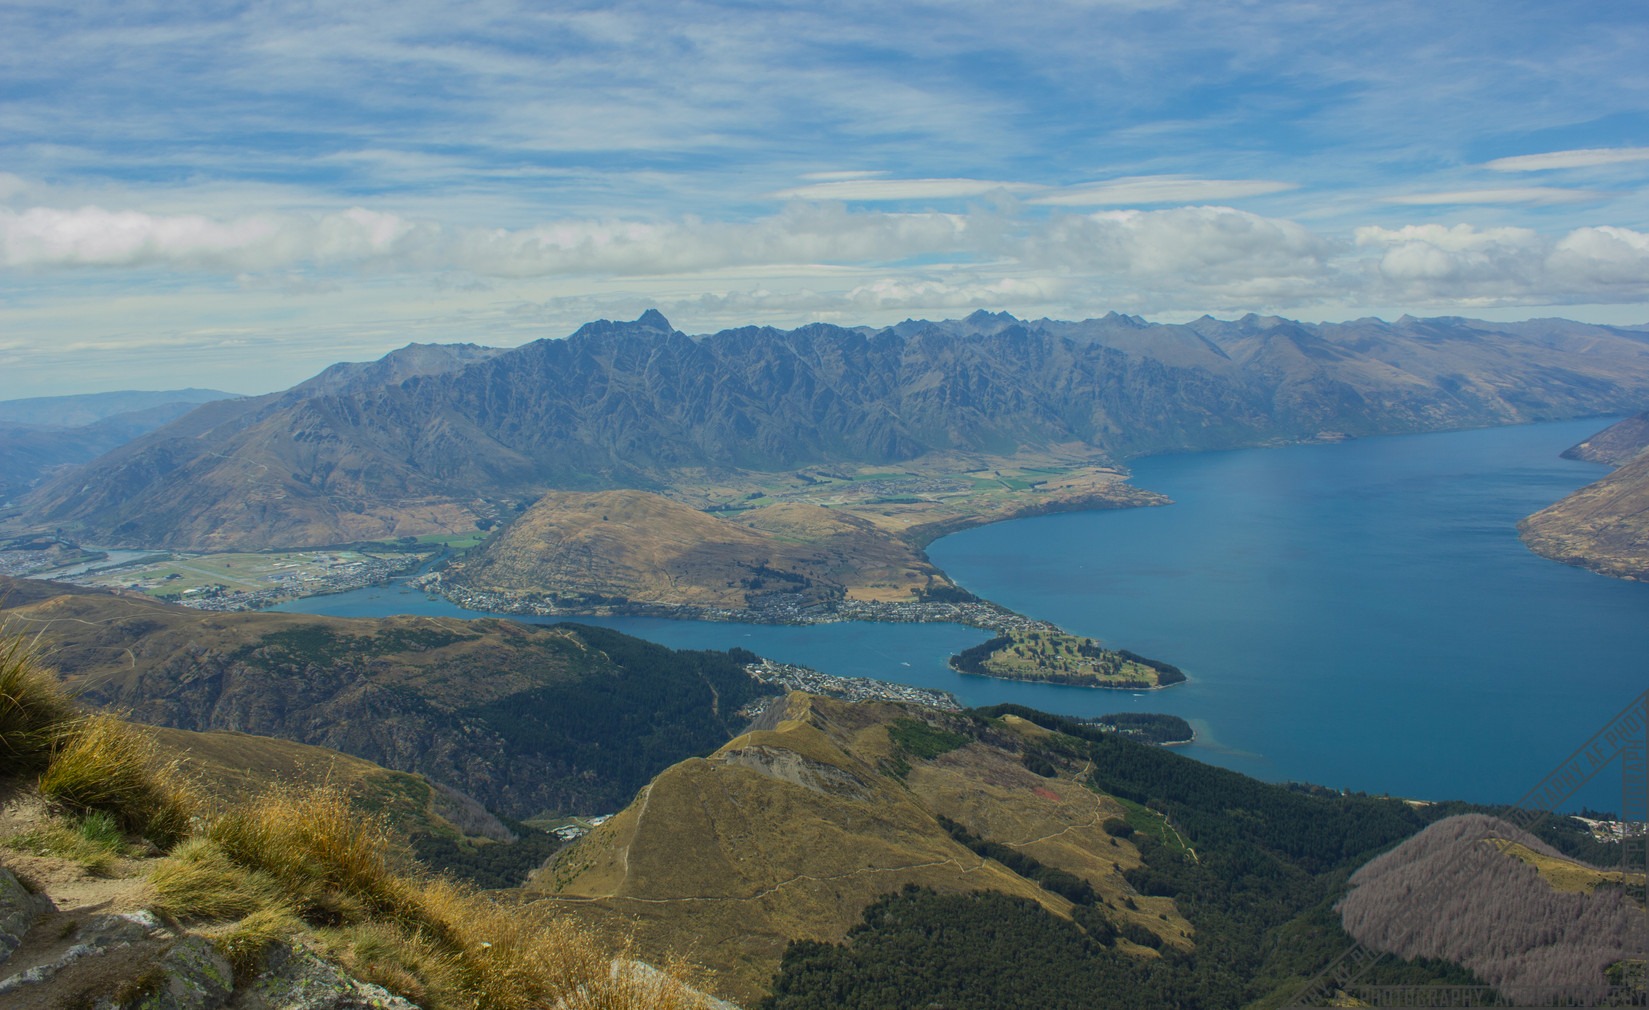 Mount Ben Lomond Queenstown New Zealand NZ106